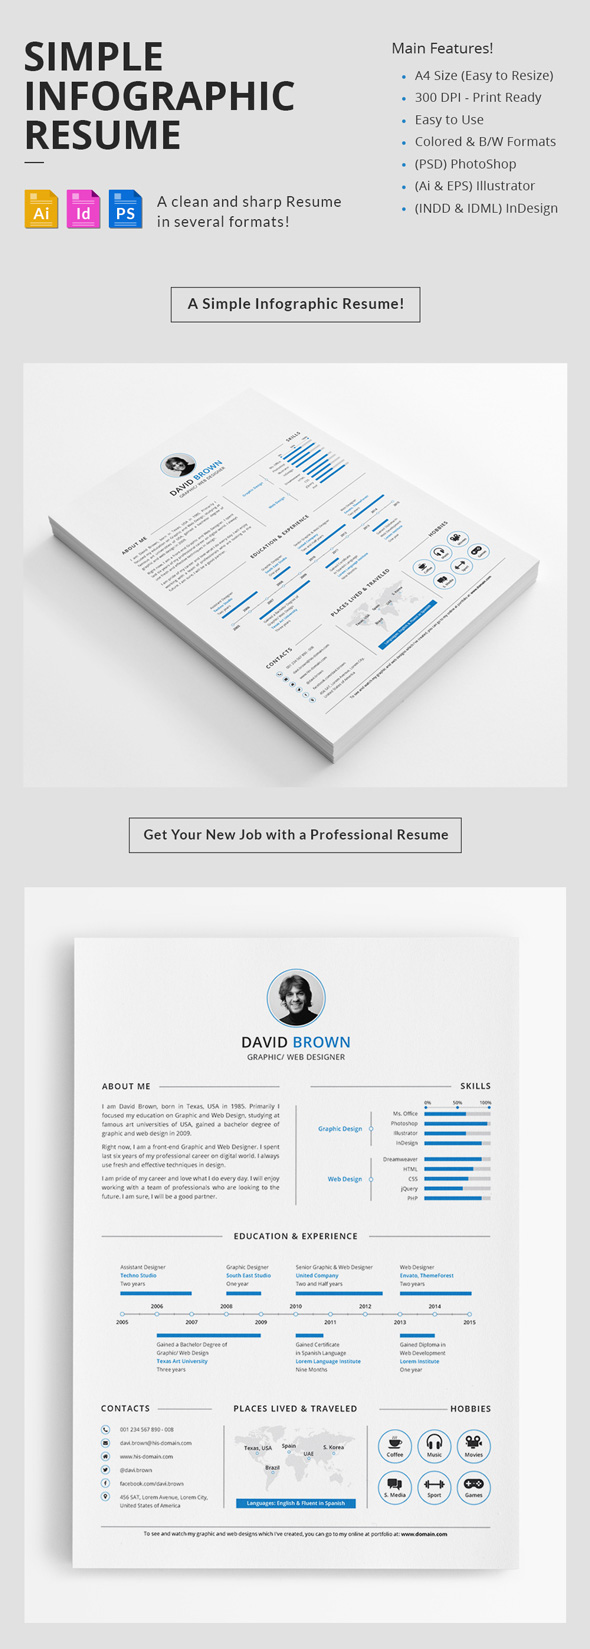 18 creative infographic resume templates for 2018 minimal resume template design fandeluxe Choice Image